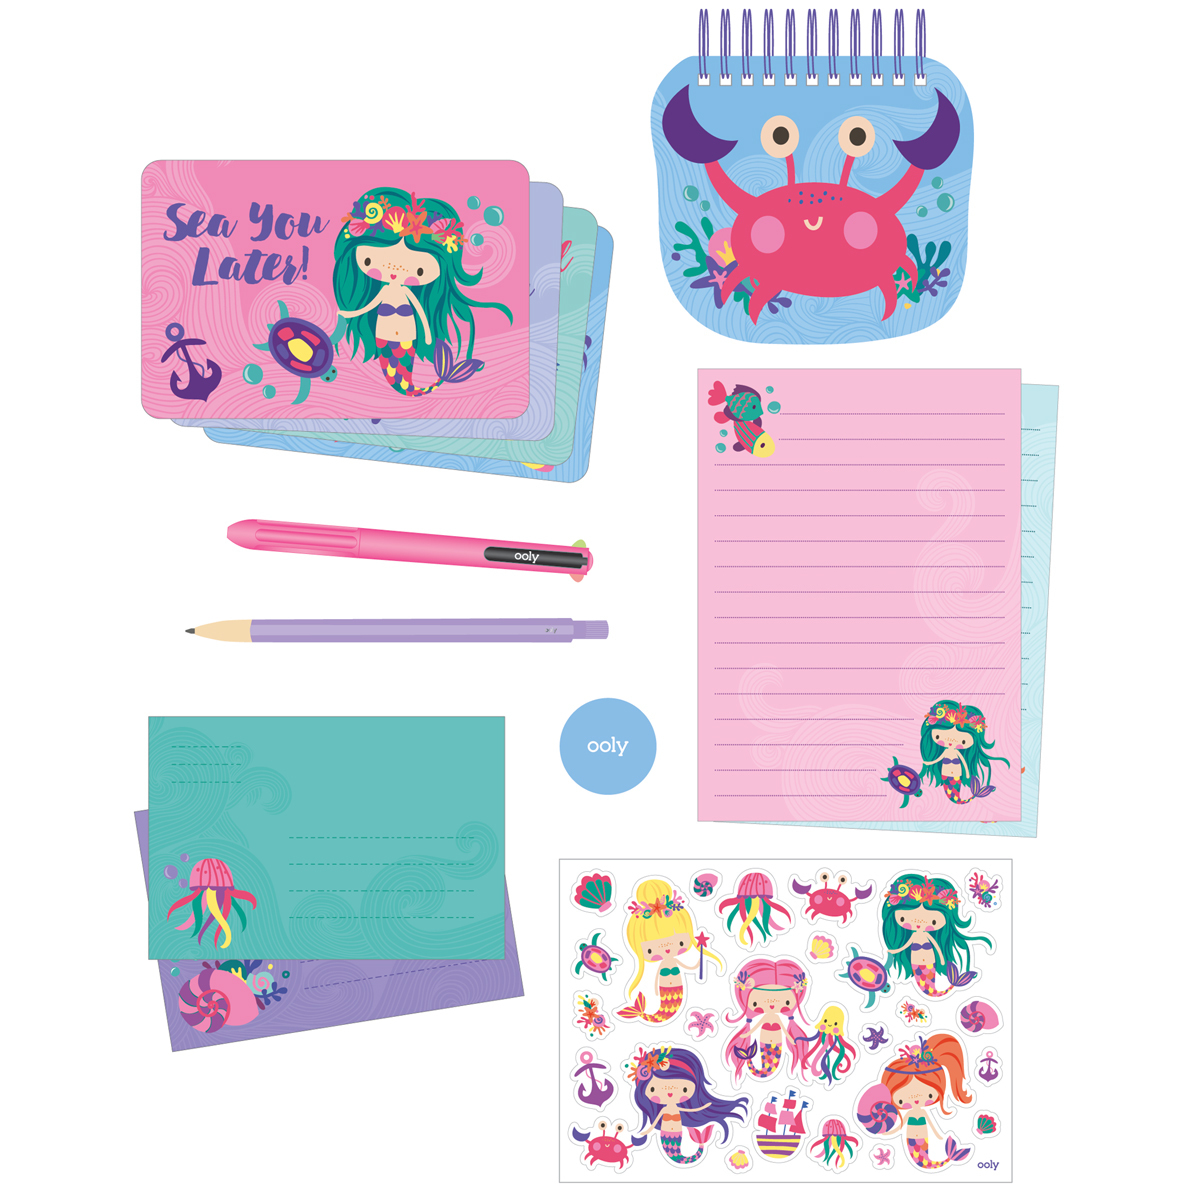 Magical Mermaids: On The Go - Stationery Kit image